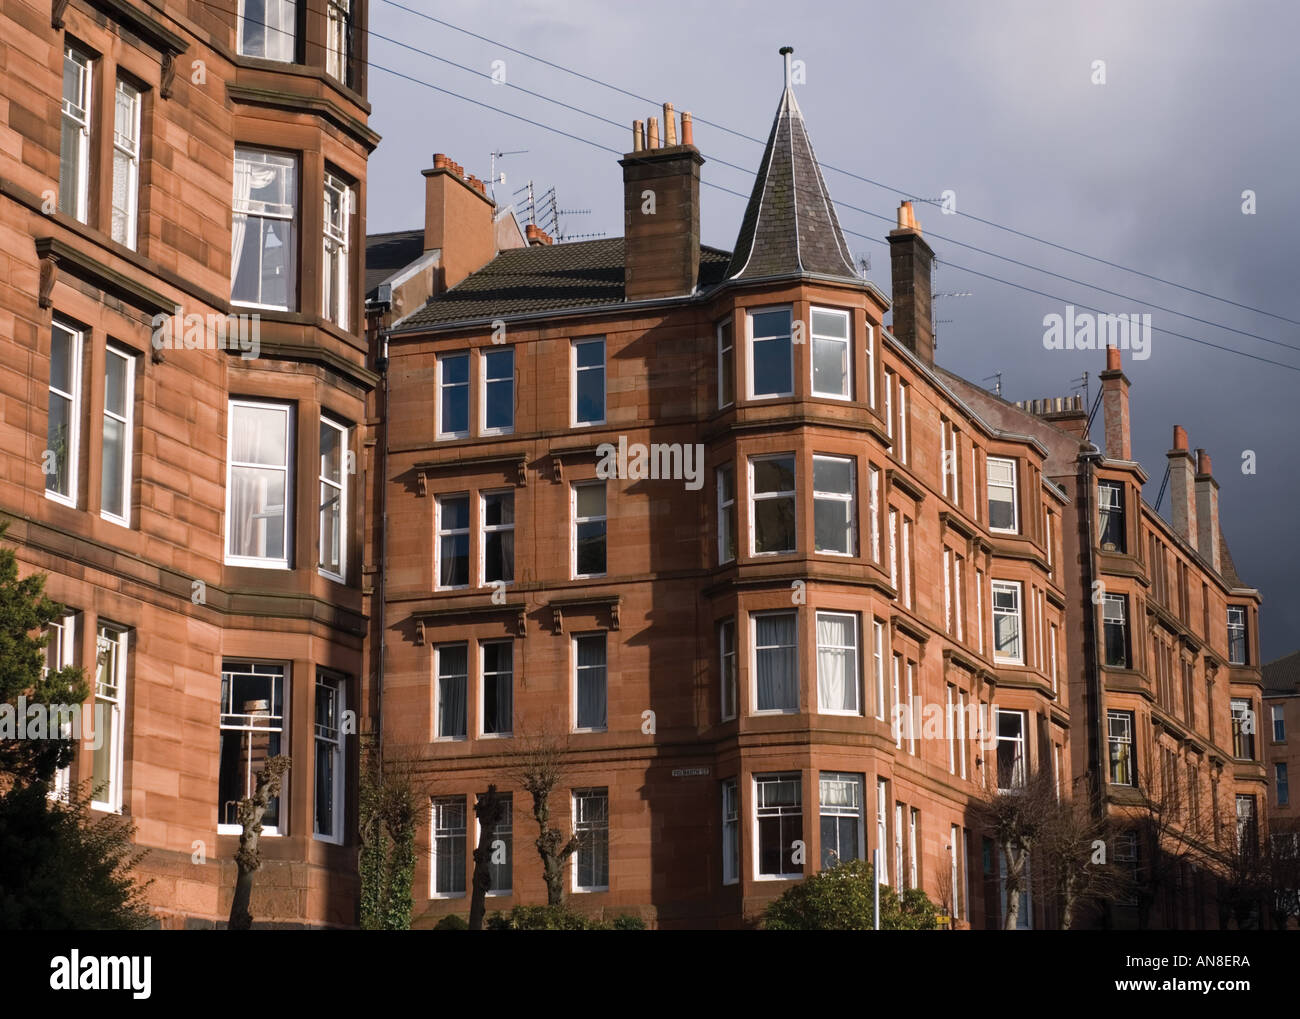 Typical red sandstone built tenement housing in affluent ...